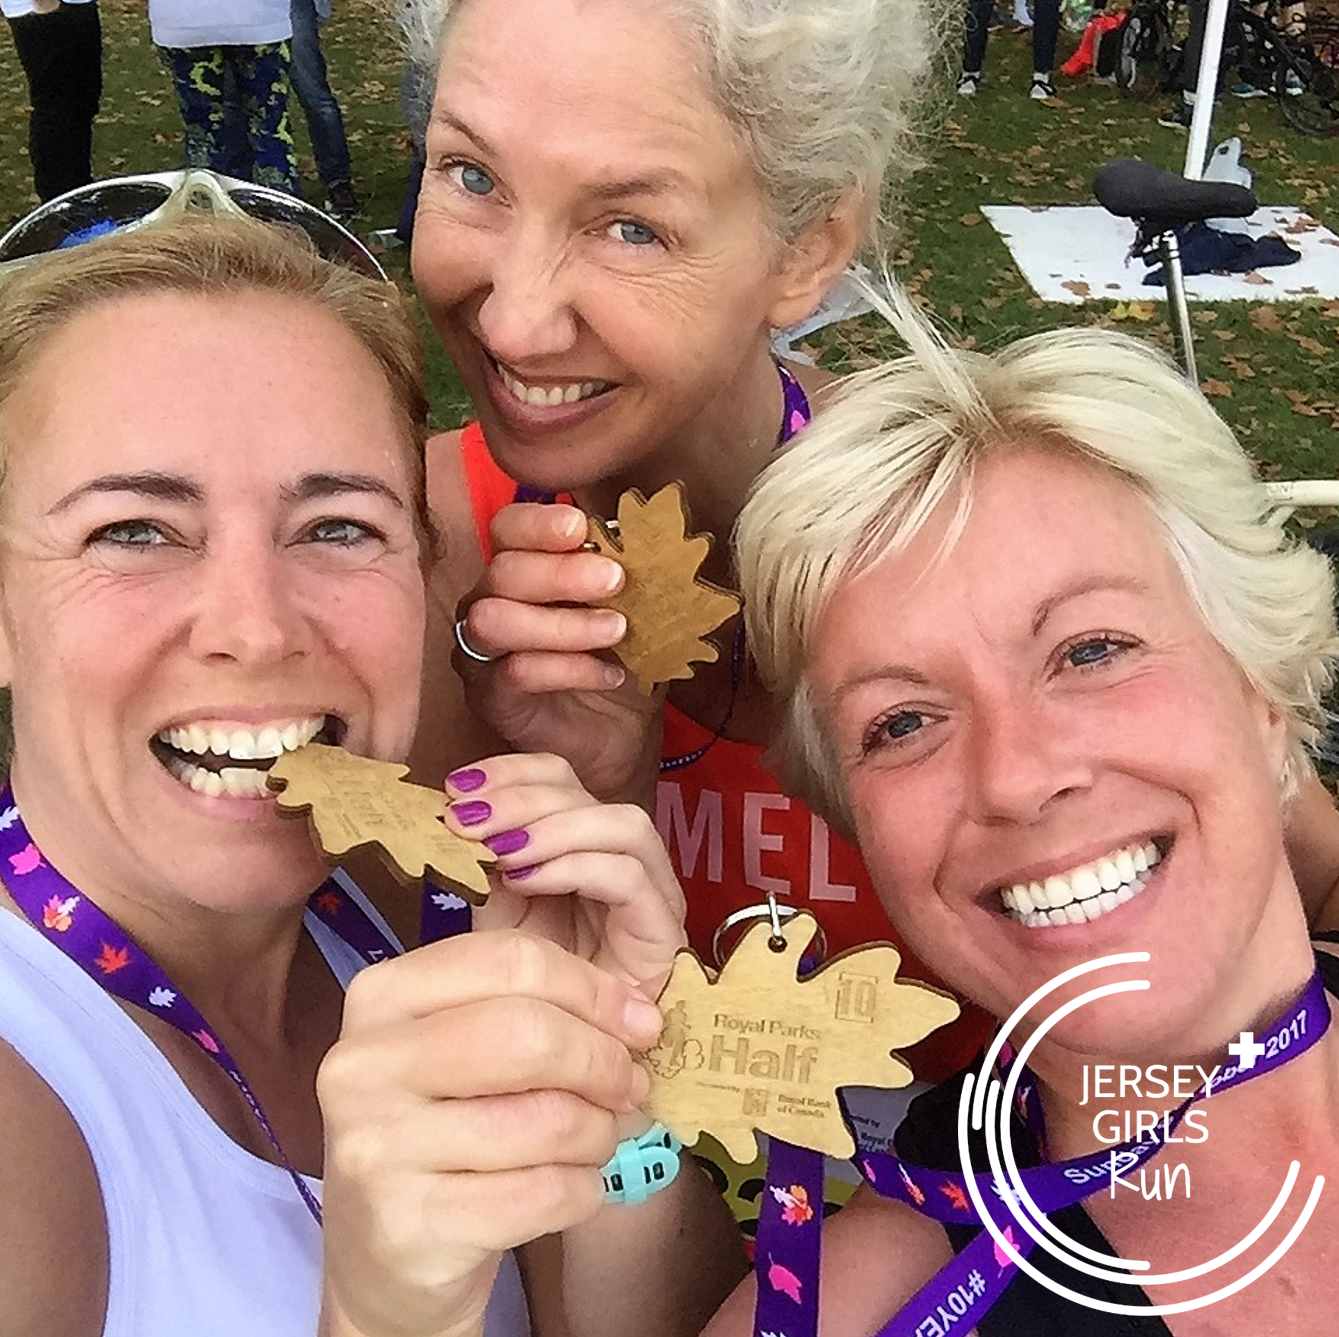 8 OCTOBER 2017 - Royal Parks Half Marathon - Three JERSEY GIRLS, one of our Leaders in Running Fitness Laura, Melanie and Annabel, headed over to London to take part in the Royal Parks Half Marathon.  The Royal Parks is a lovely route starting out from Hyde Park, down Constitution Hill, through St James' Park, past Horse Guards Parade, through Whitehall past the Cenotaph and Downing Street, along she Strand to Aldwych before looping back to Trafalgar Square, down the Mall towards Buckingham Palace then back to Hyde Park and Kensington Gardens before finishing just by the Royal Albert Hall. A great sightseeing tour and fantastic atmosphere.